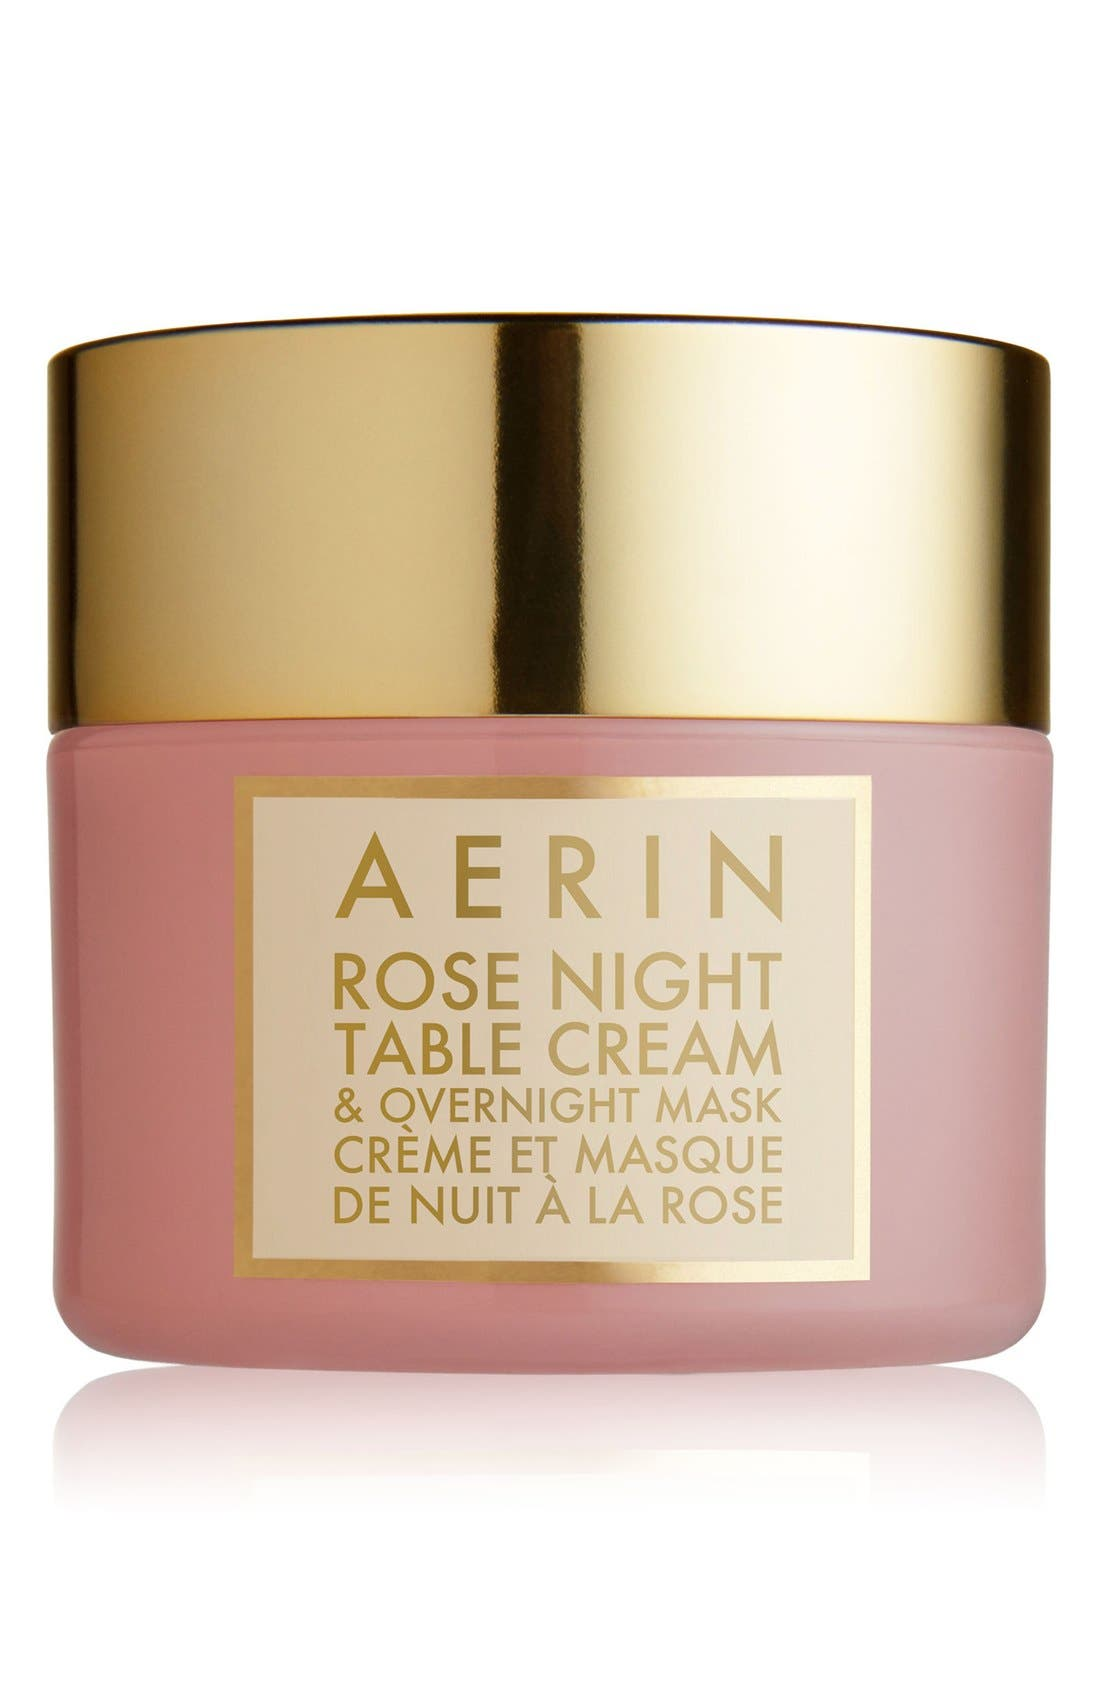 AERIN Beauty Rose Night Table Cream & Overnight Mask